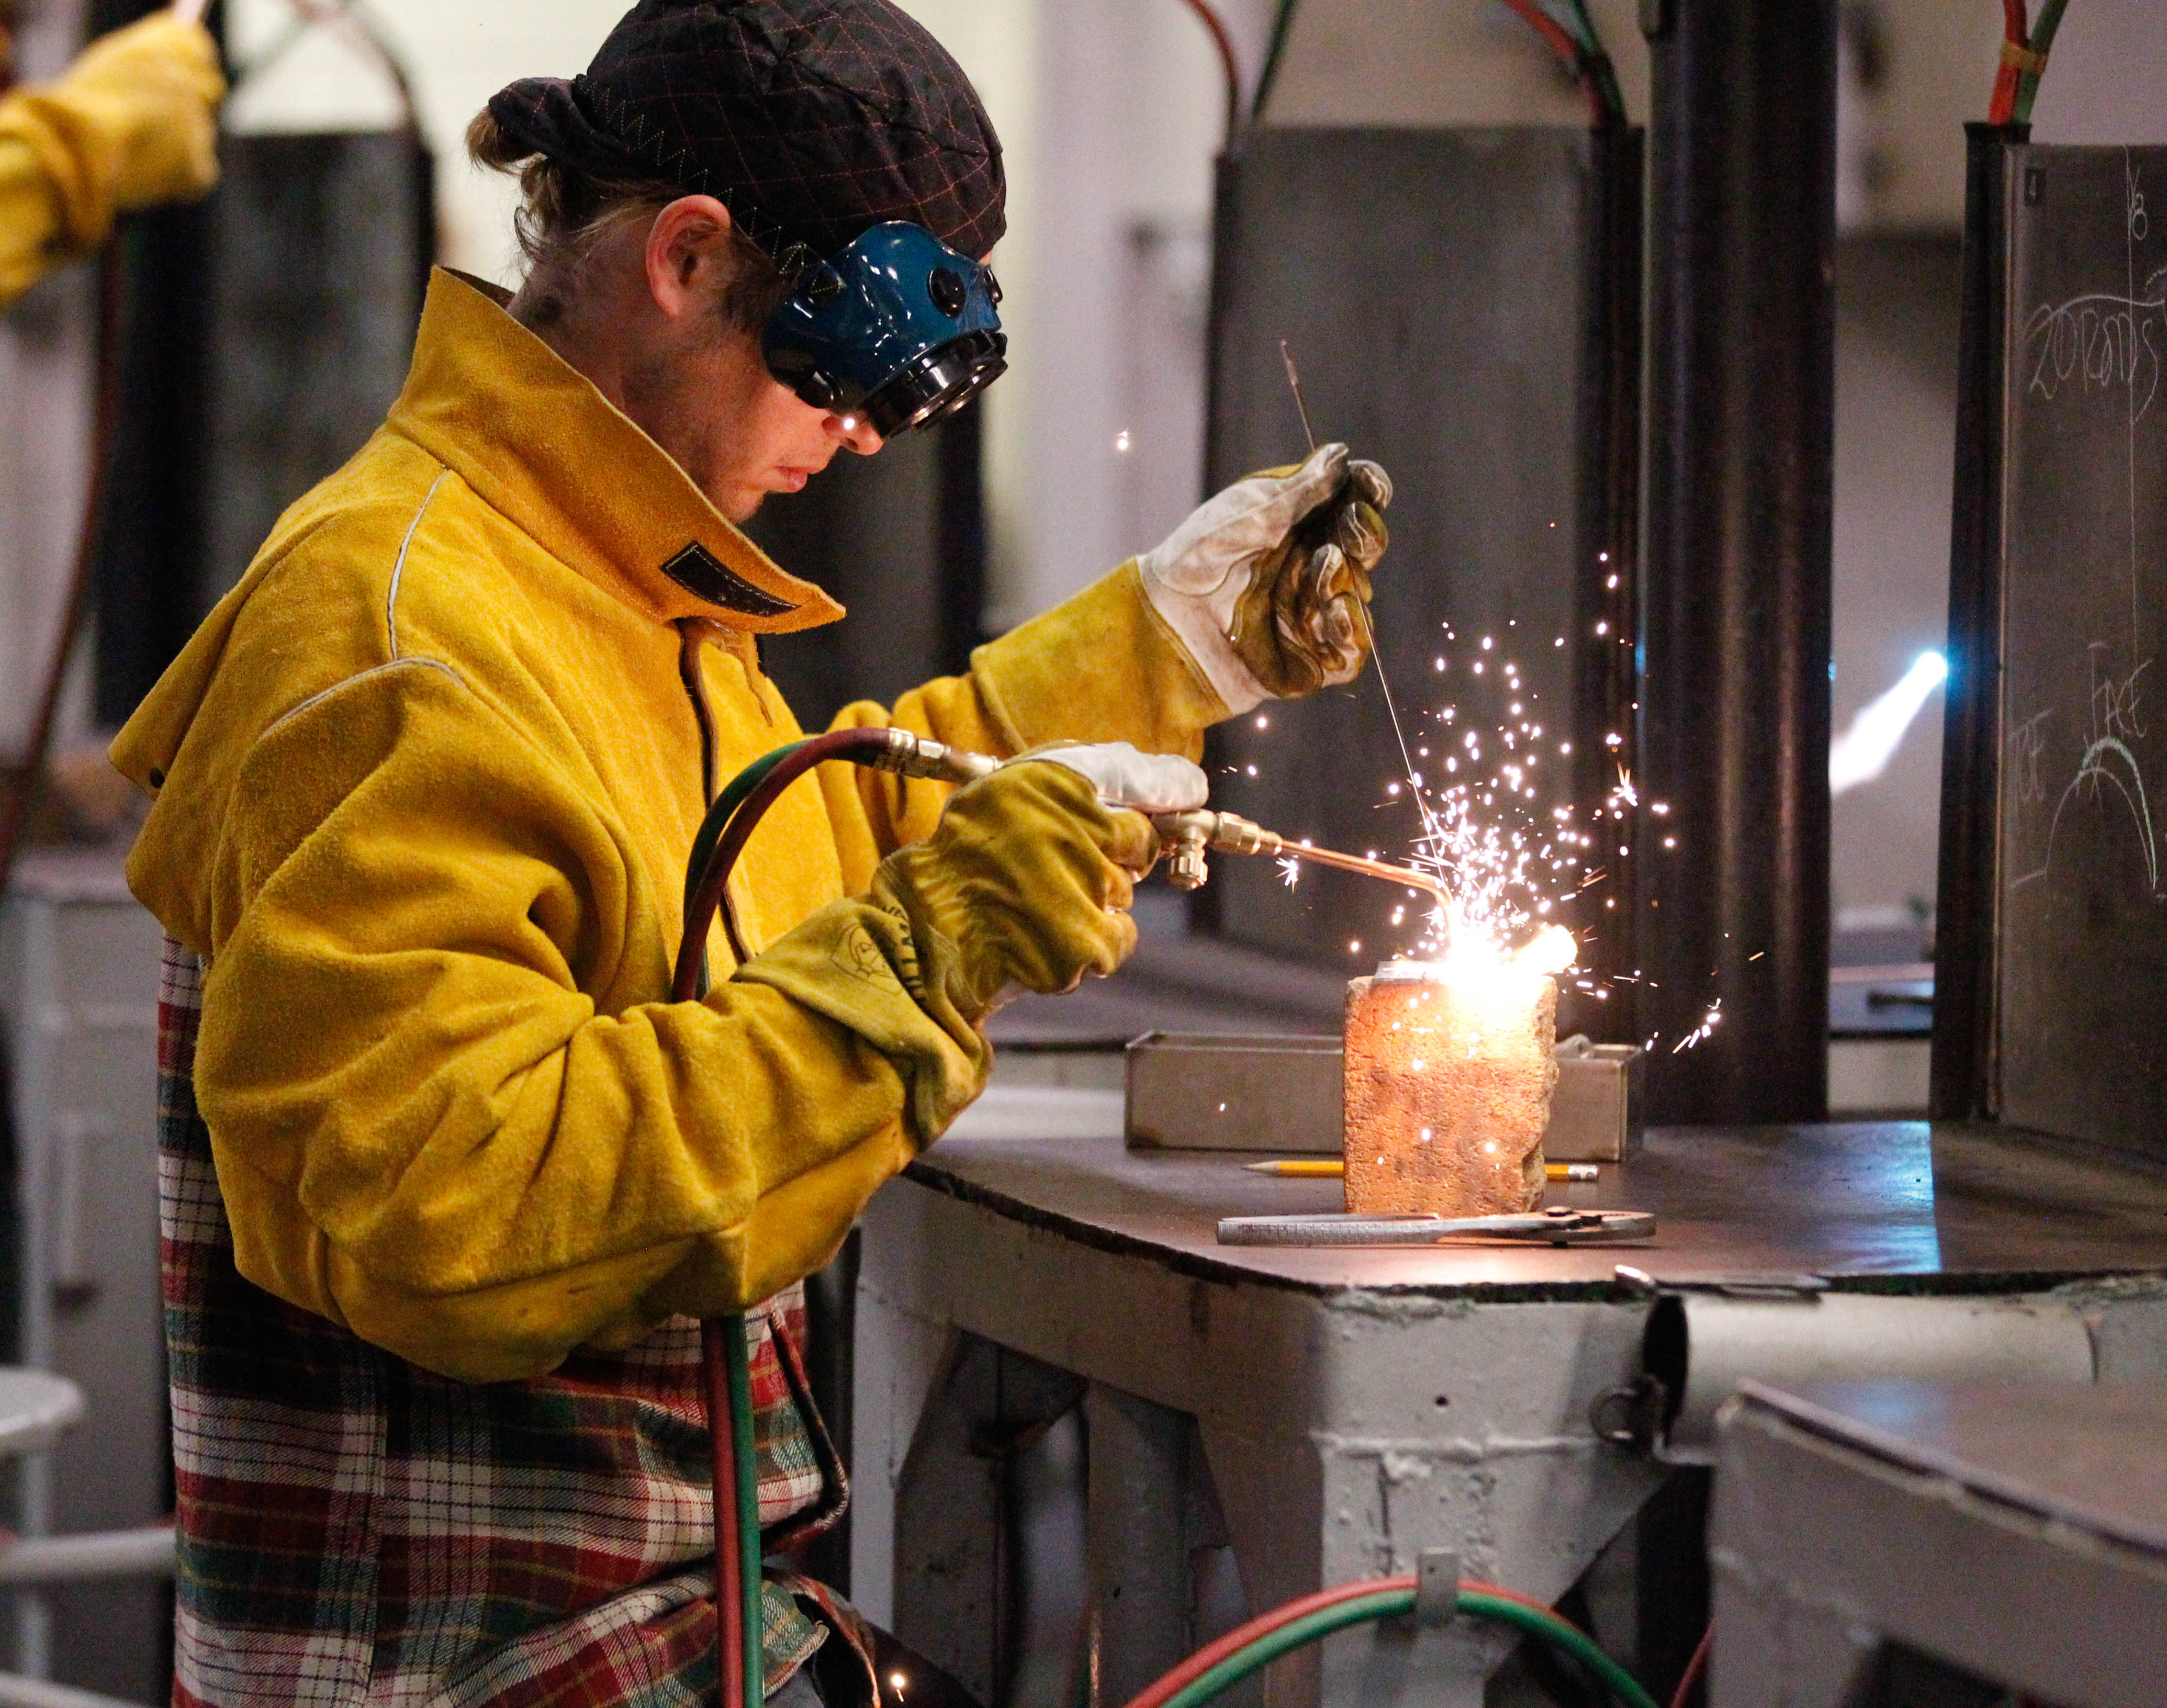 Light a flame, weld some metal